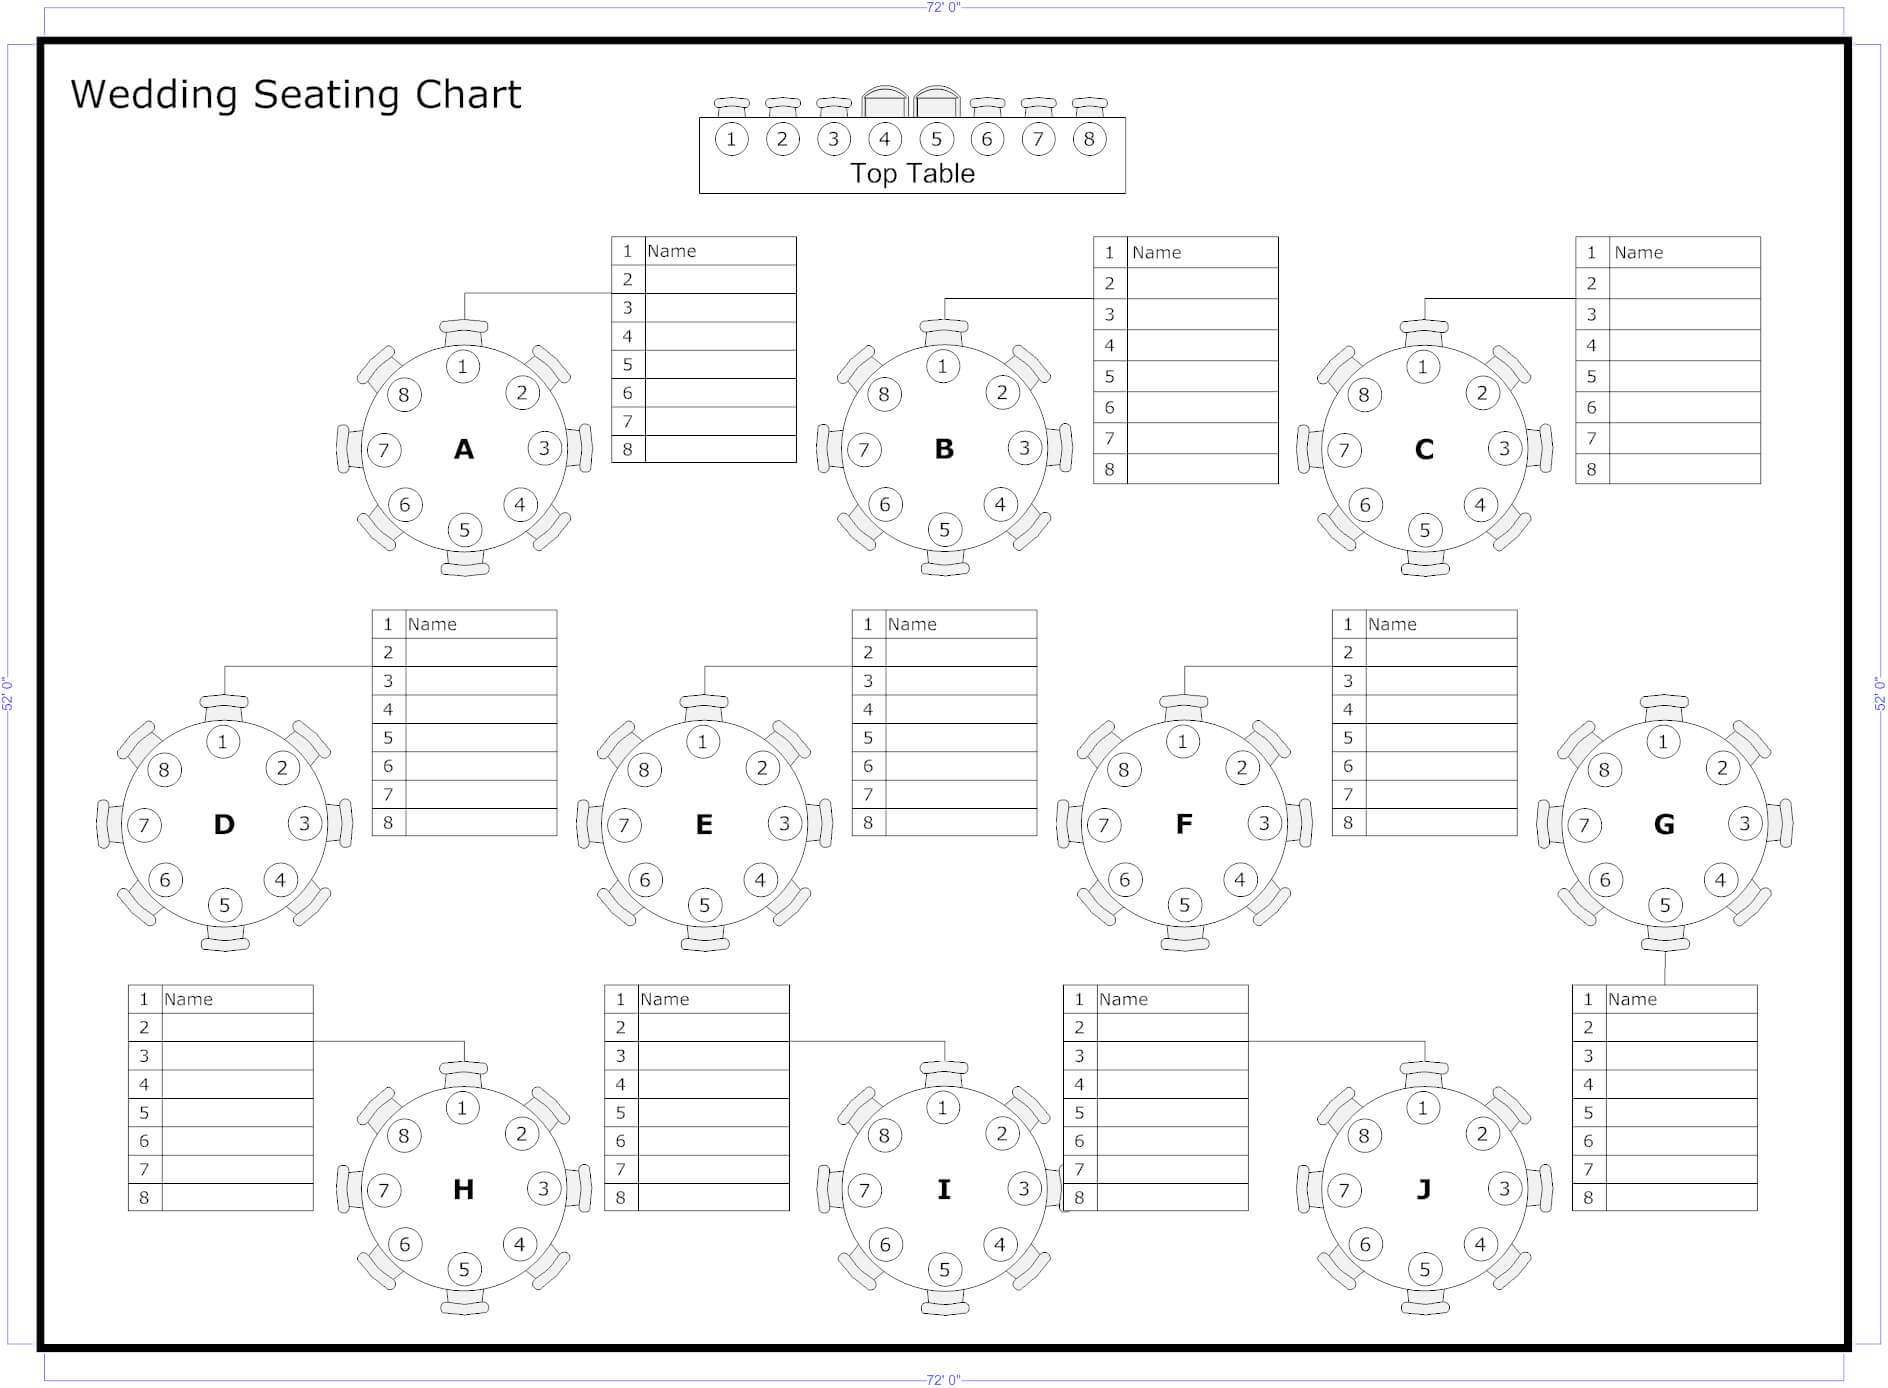 Tips To Seat Your Wedding Guests | Seating Chart Wedding With Regard To Wedding Seating Chart Template Word